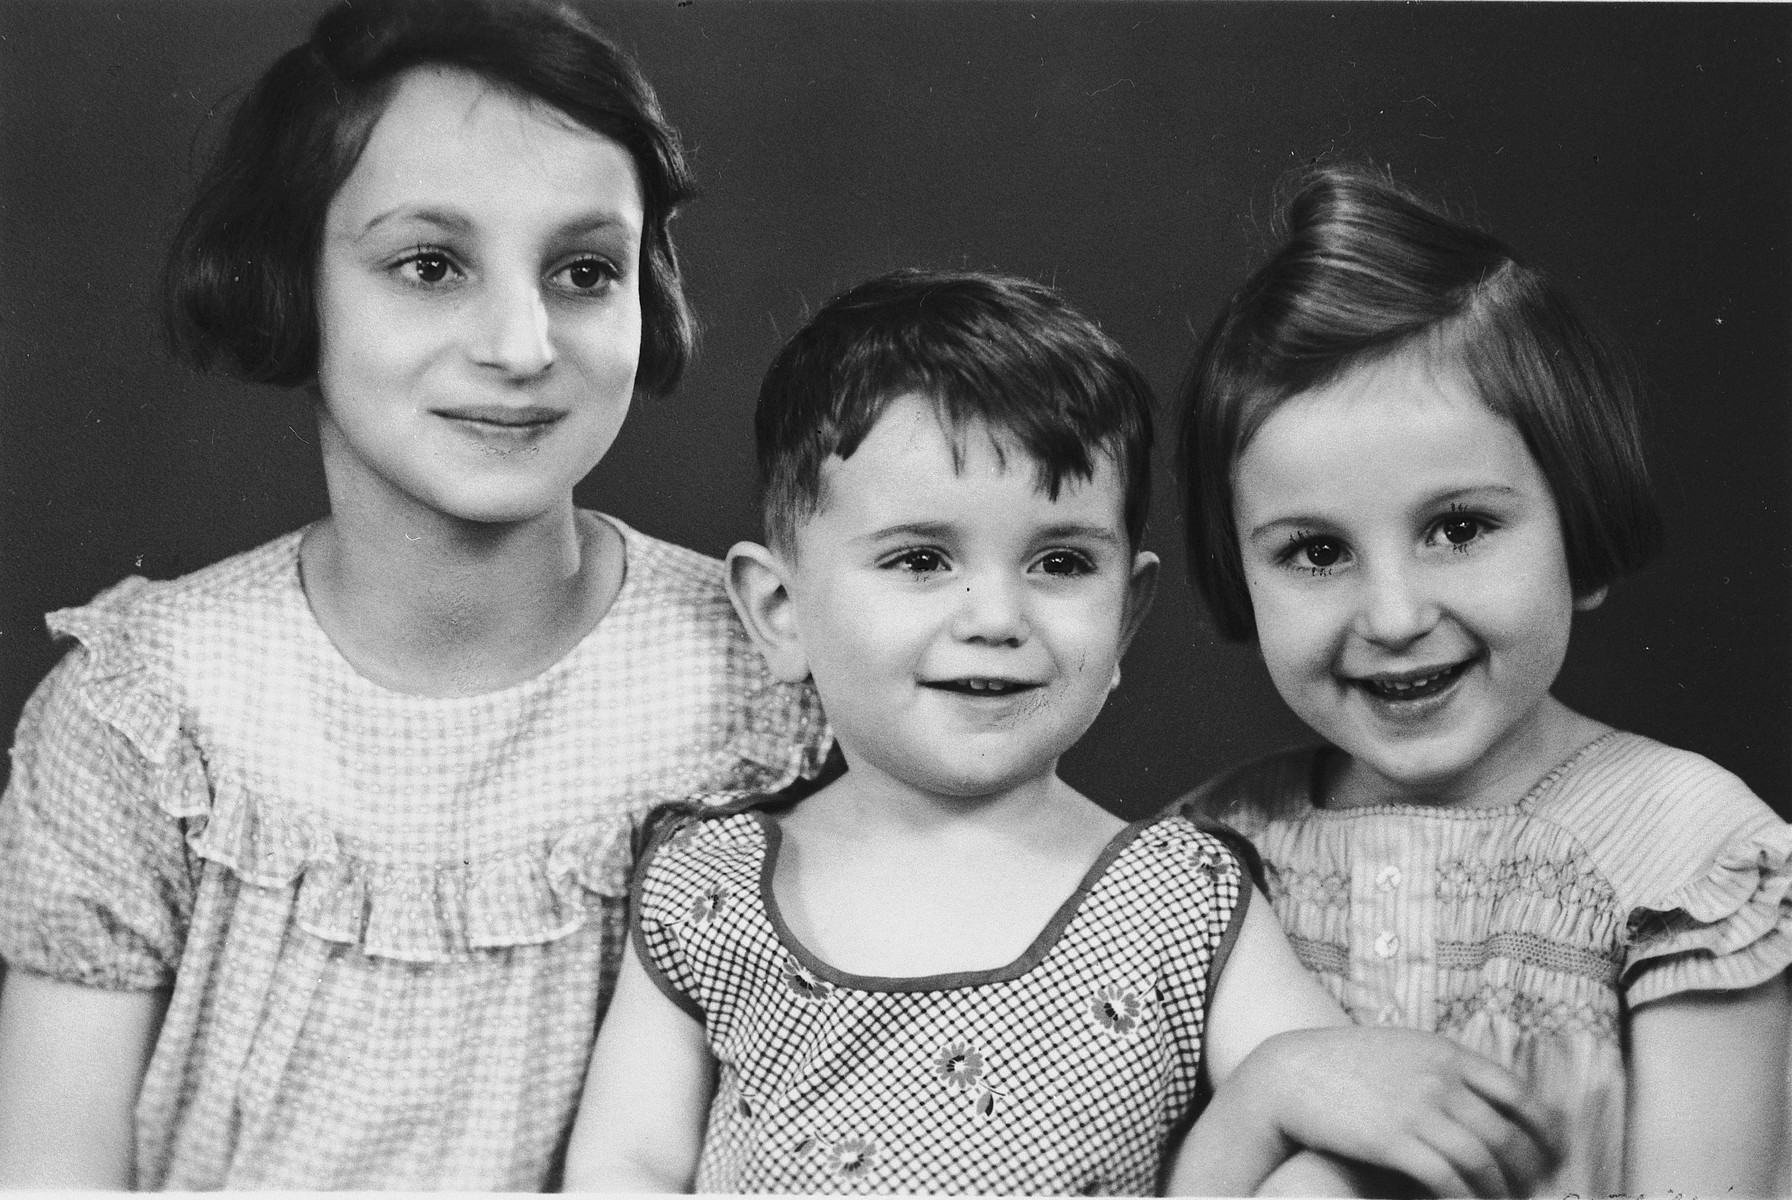 Studio portrait of three Jewish children in Cologne, Germany.  Pictured from left to right are: Inge, Egon and Gisela Berg.  Egon was the cousin of Inge and Gisela and the son of Karl and Rosel (Marx) Berg from Cologne.